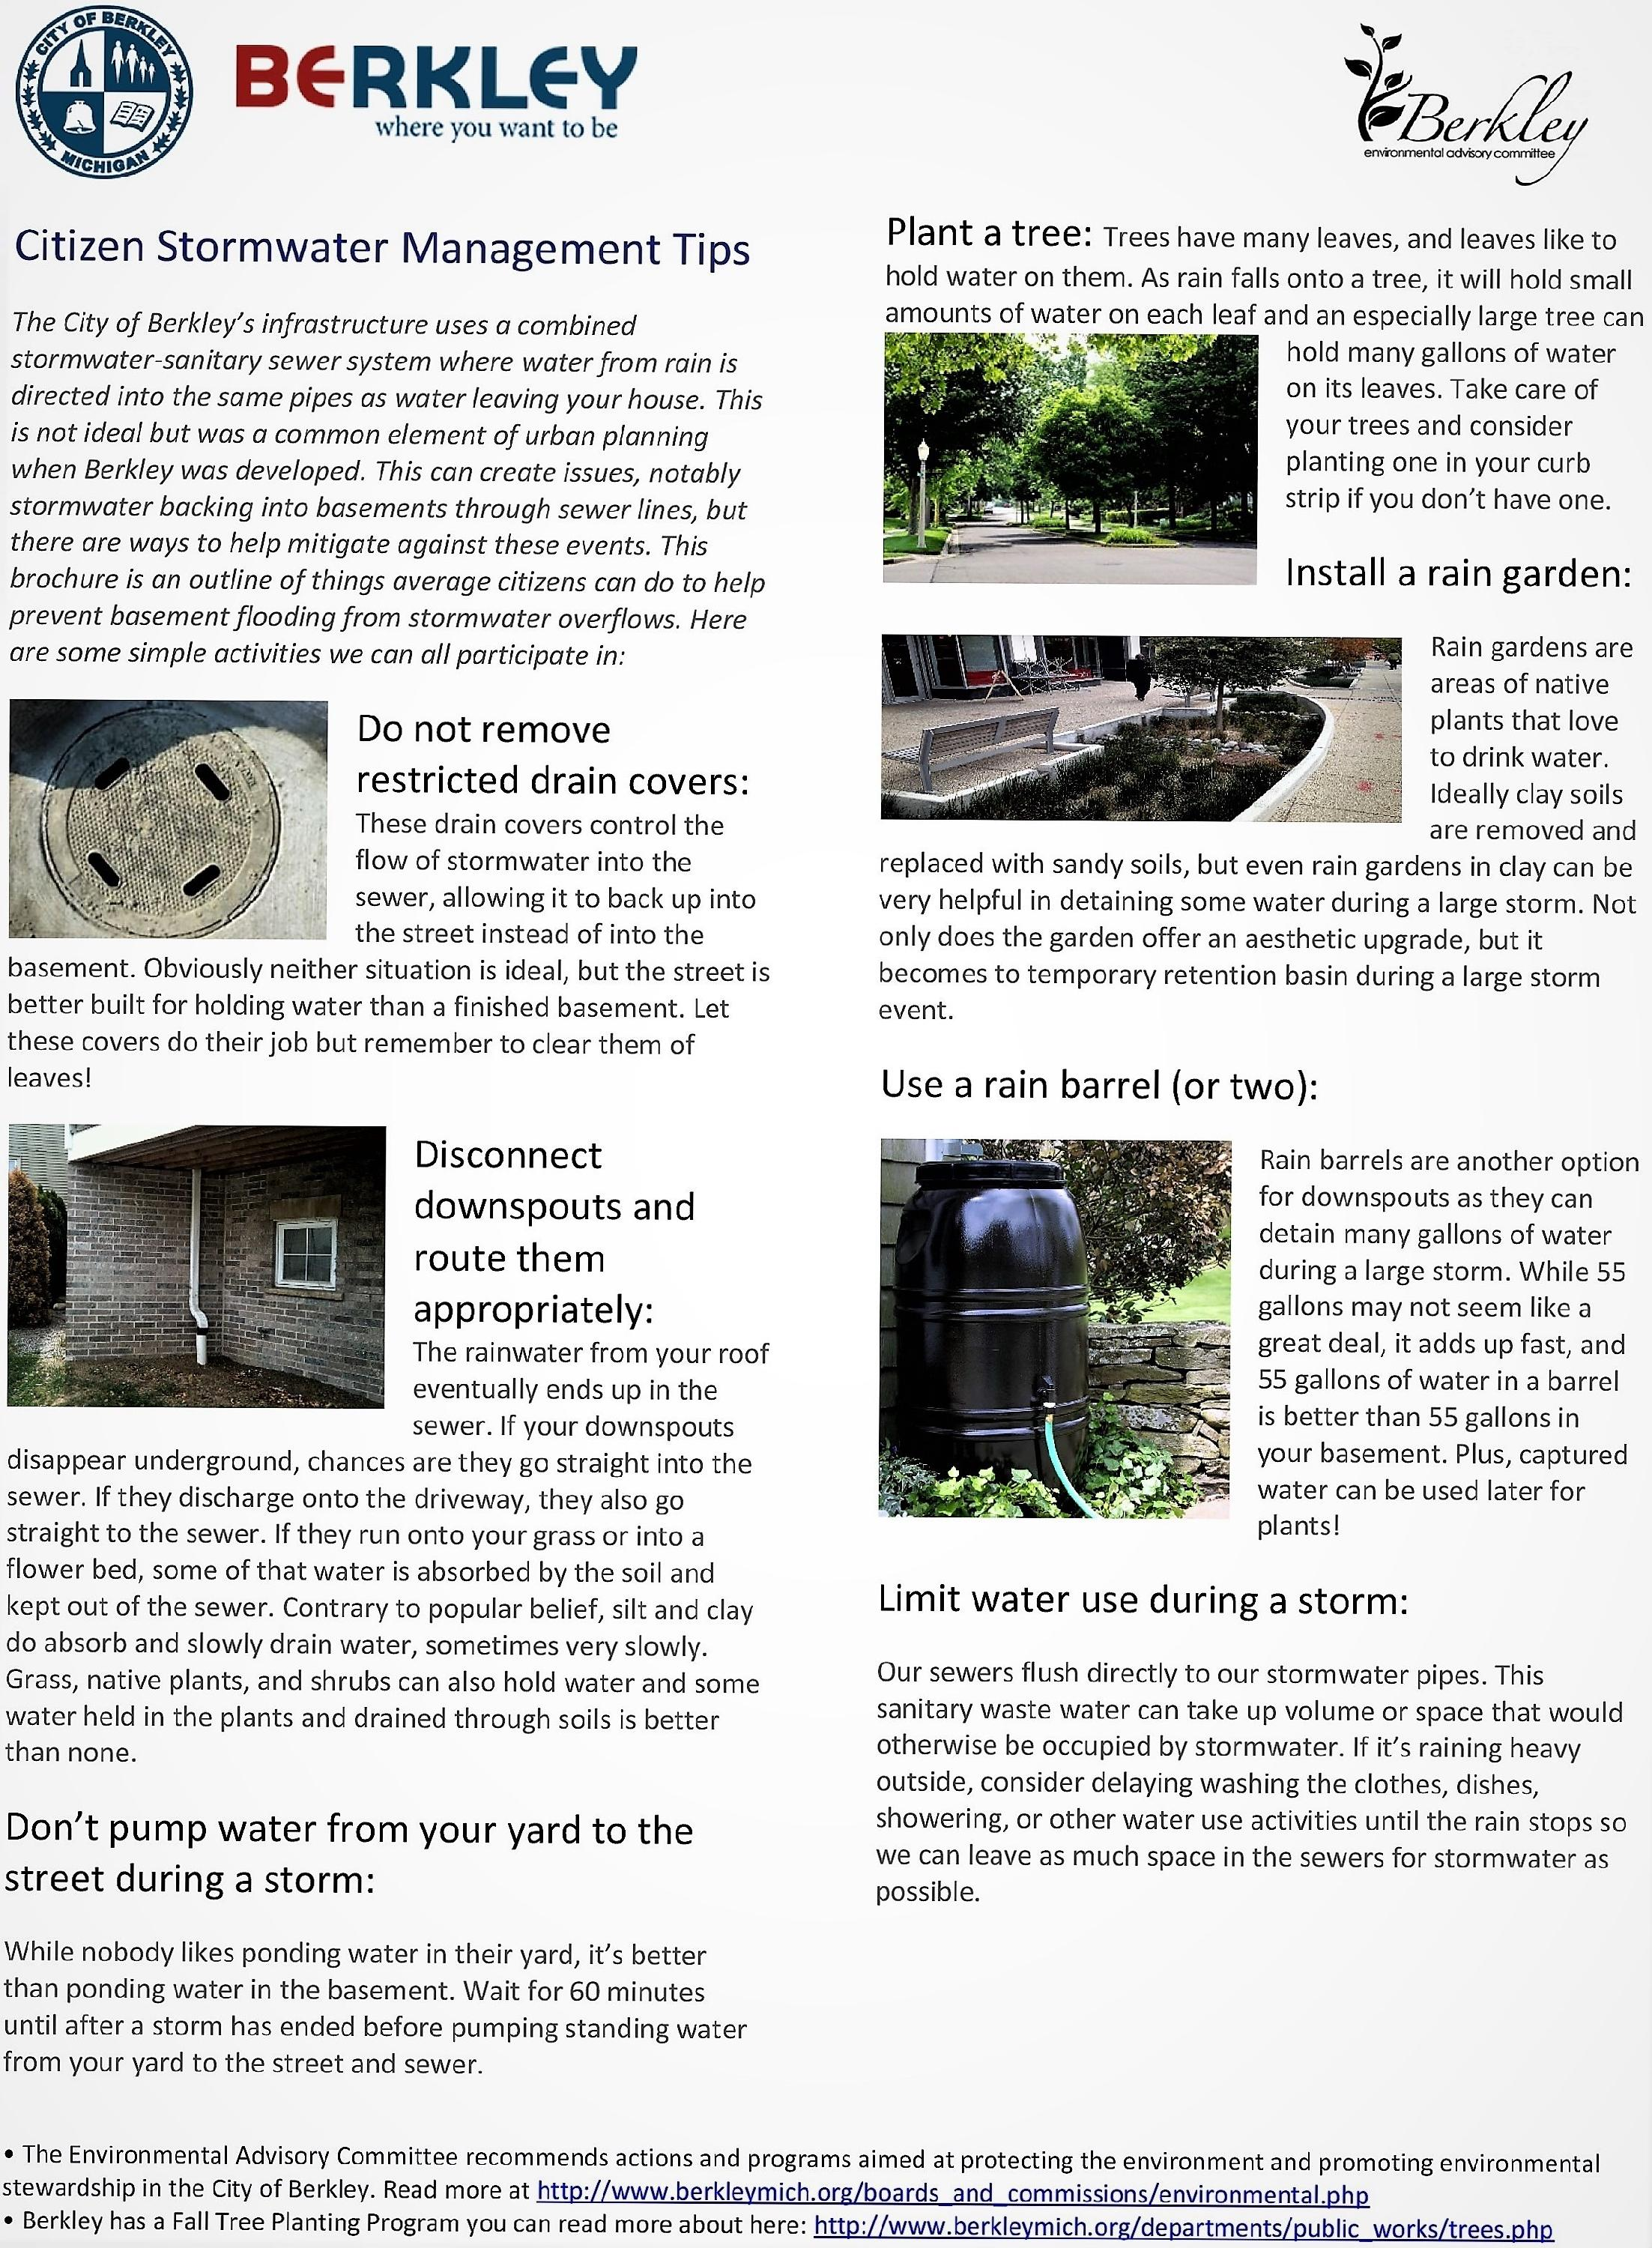 Stormwater Management Tips